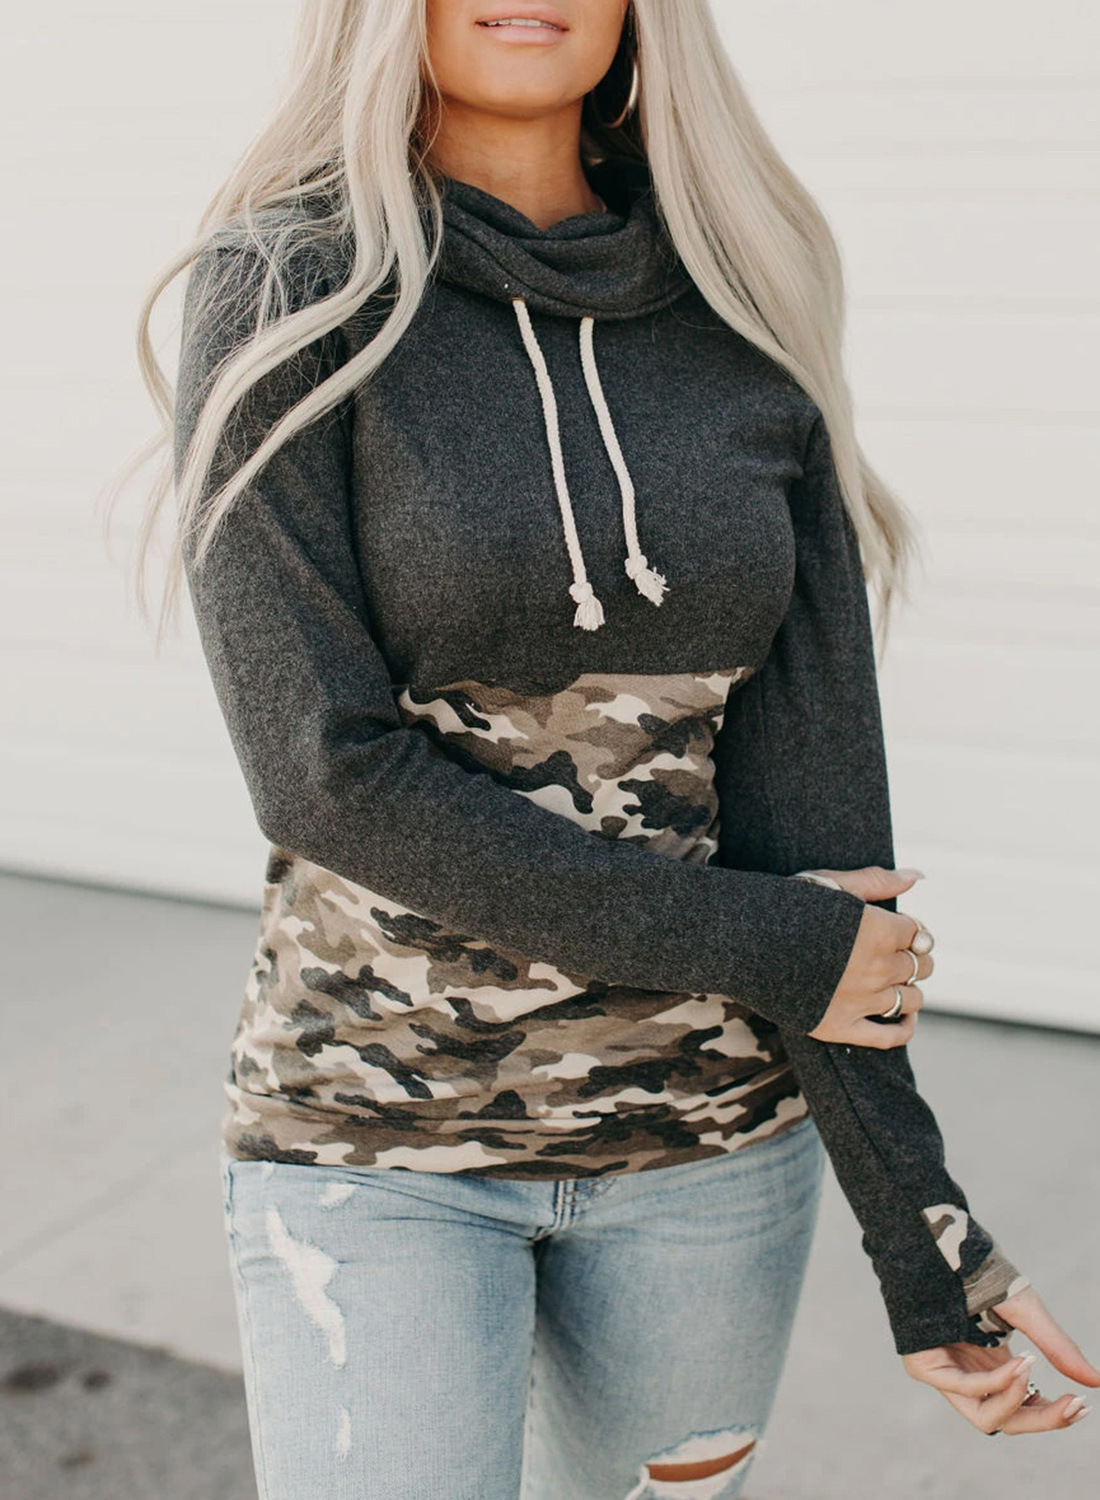 women autumn new long-sleeved camouflage hit color street style pile collar sweater  NSSI2730